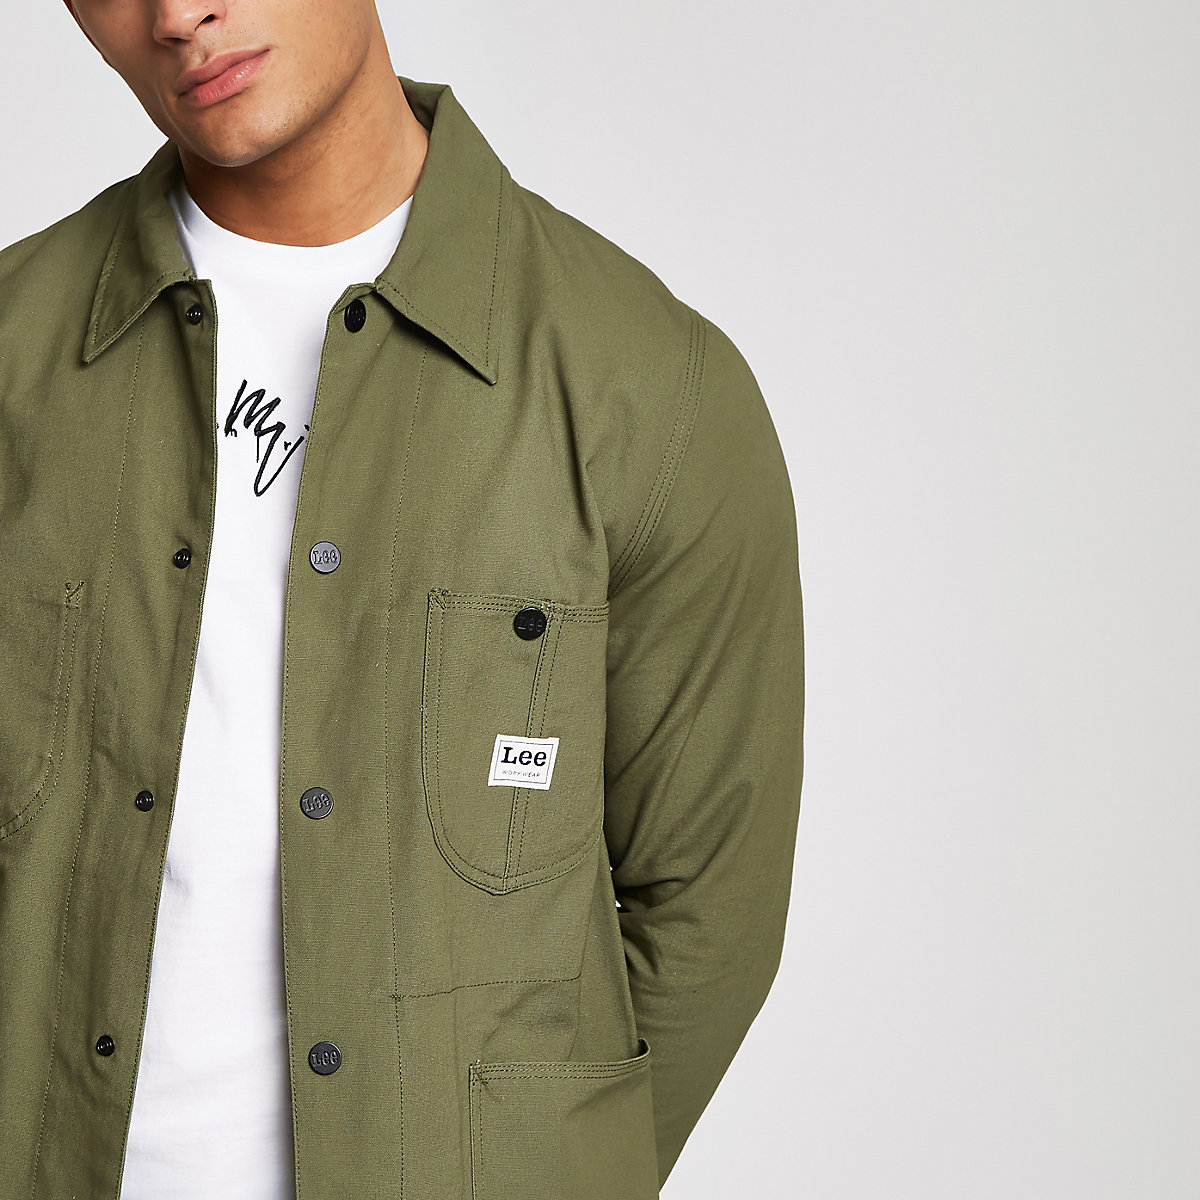 Lee dark green loco jacket